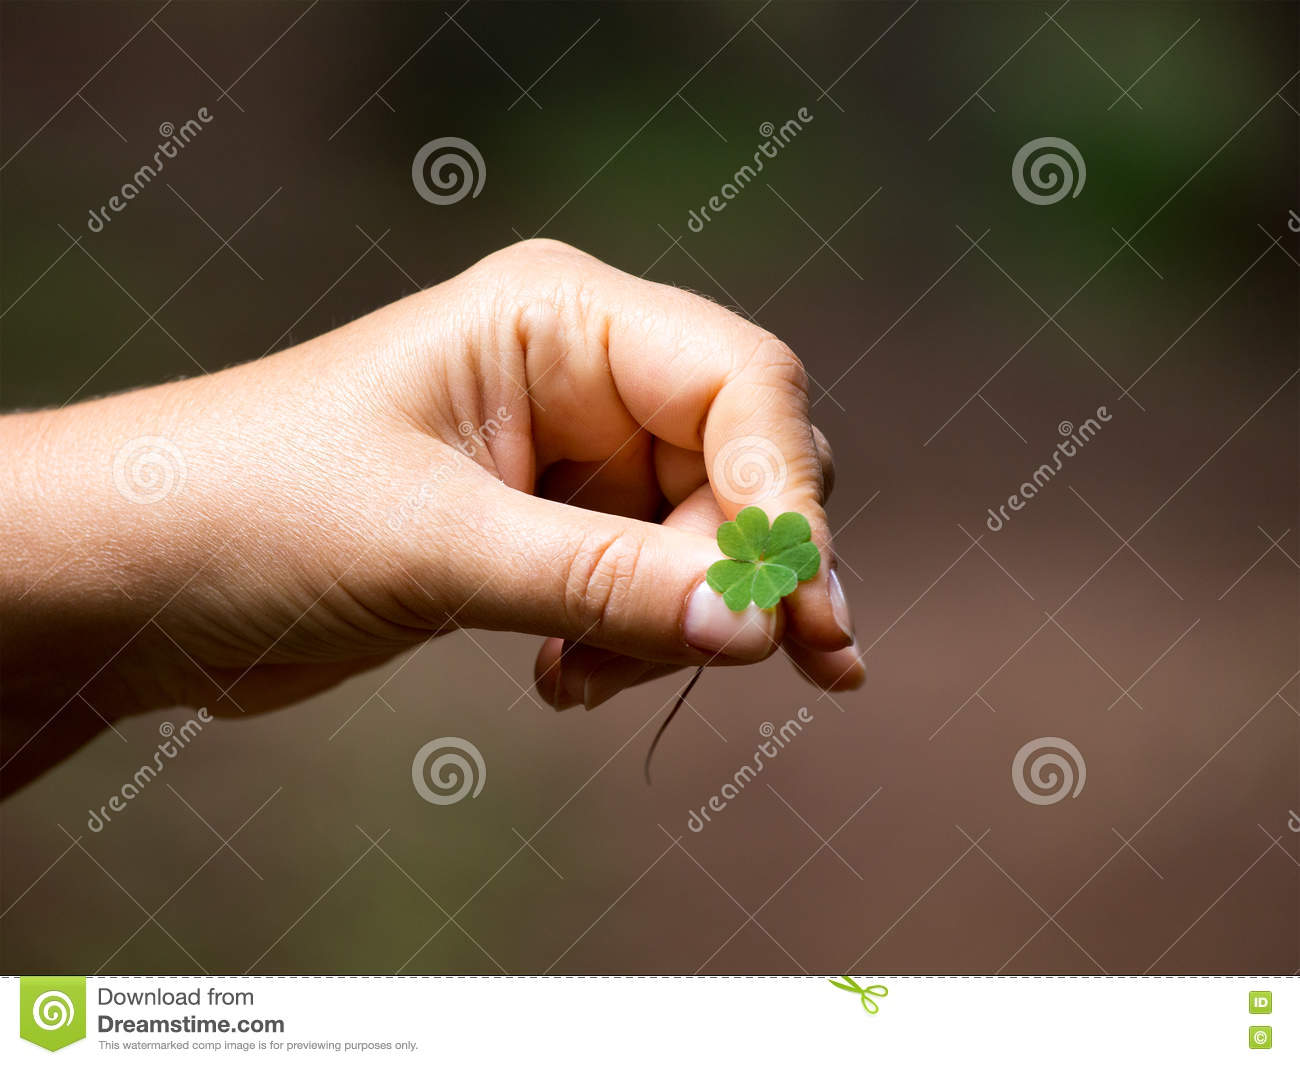 The rare find a symbol of good luck four leaves clover rhodop royalty free stock photo buycottarizona Image collections